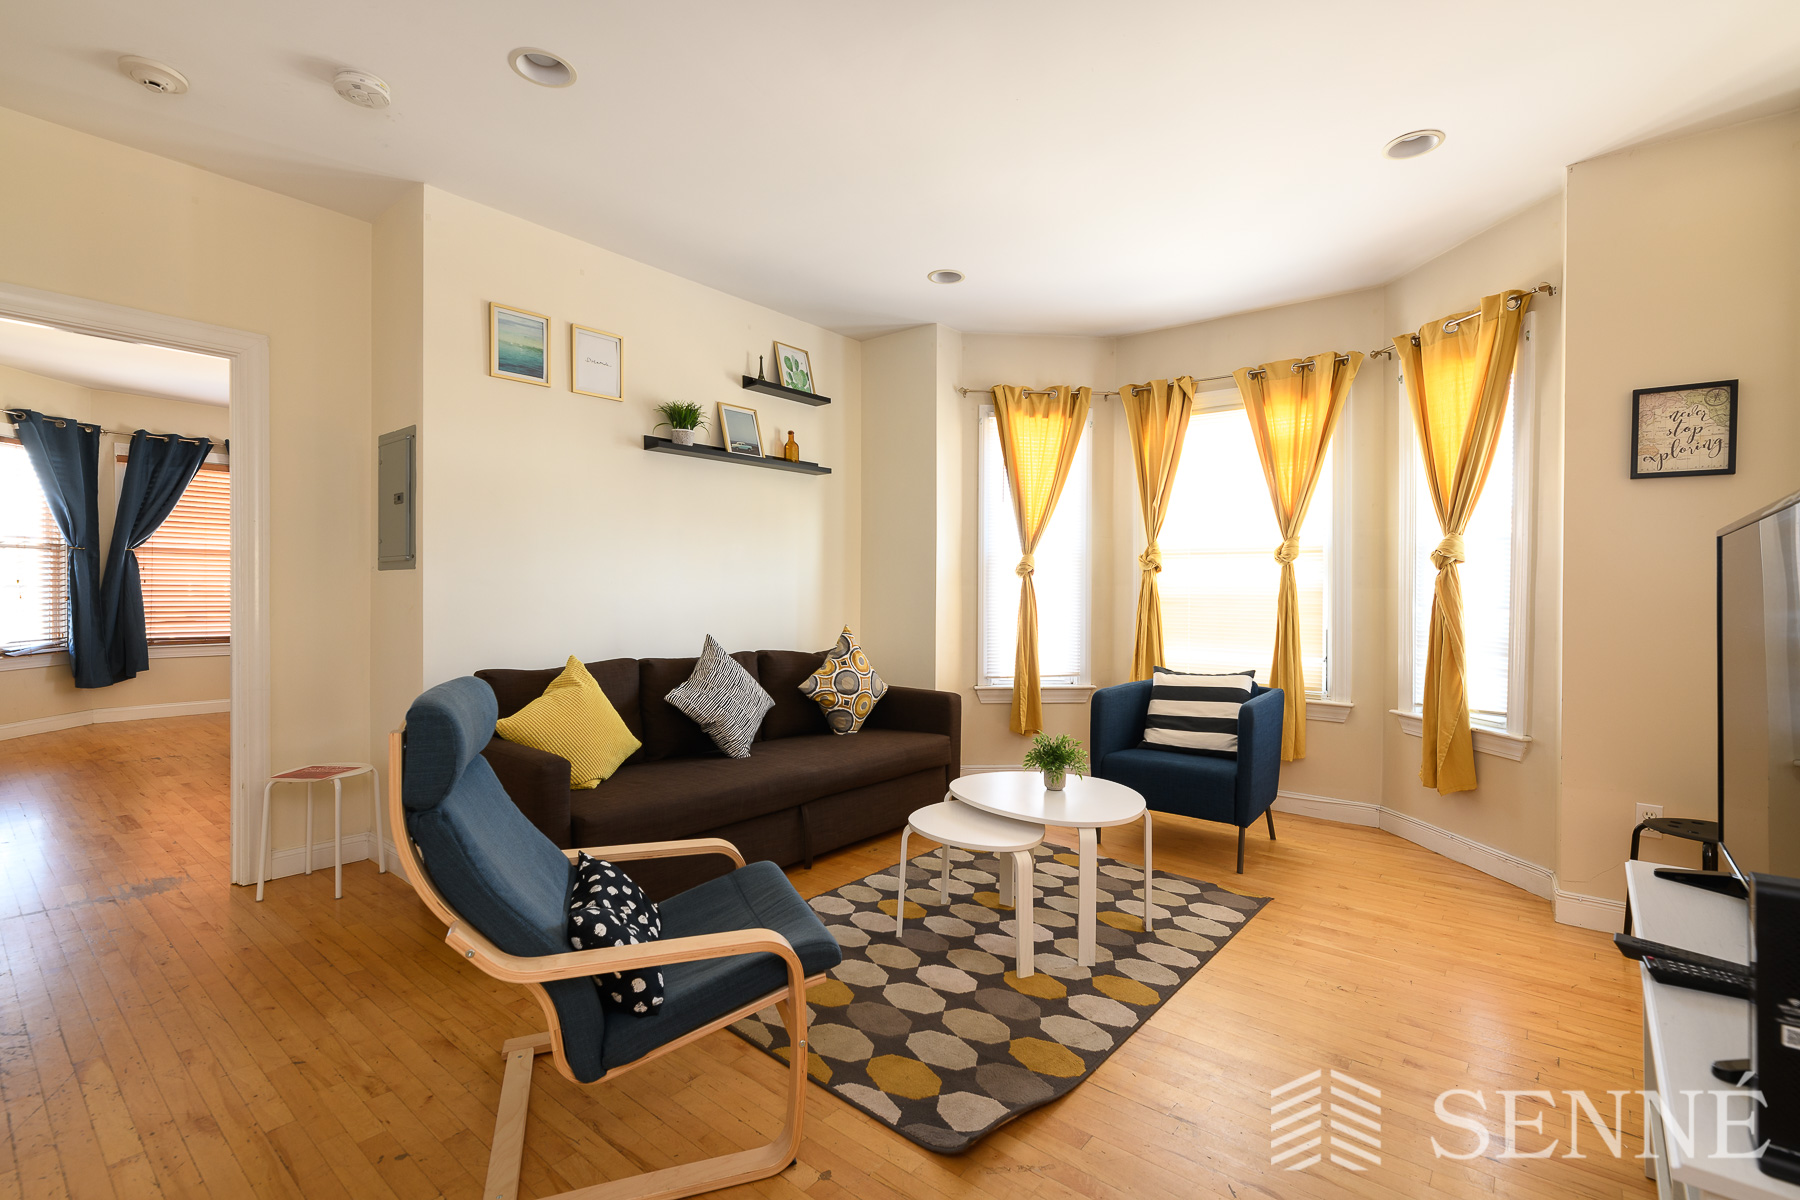 2 Beds, 1 Bath apartment in Somerville for $2,875